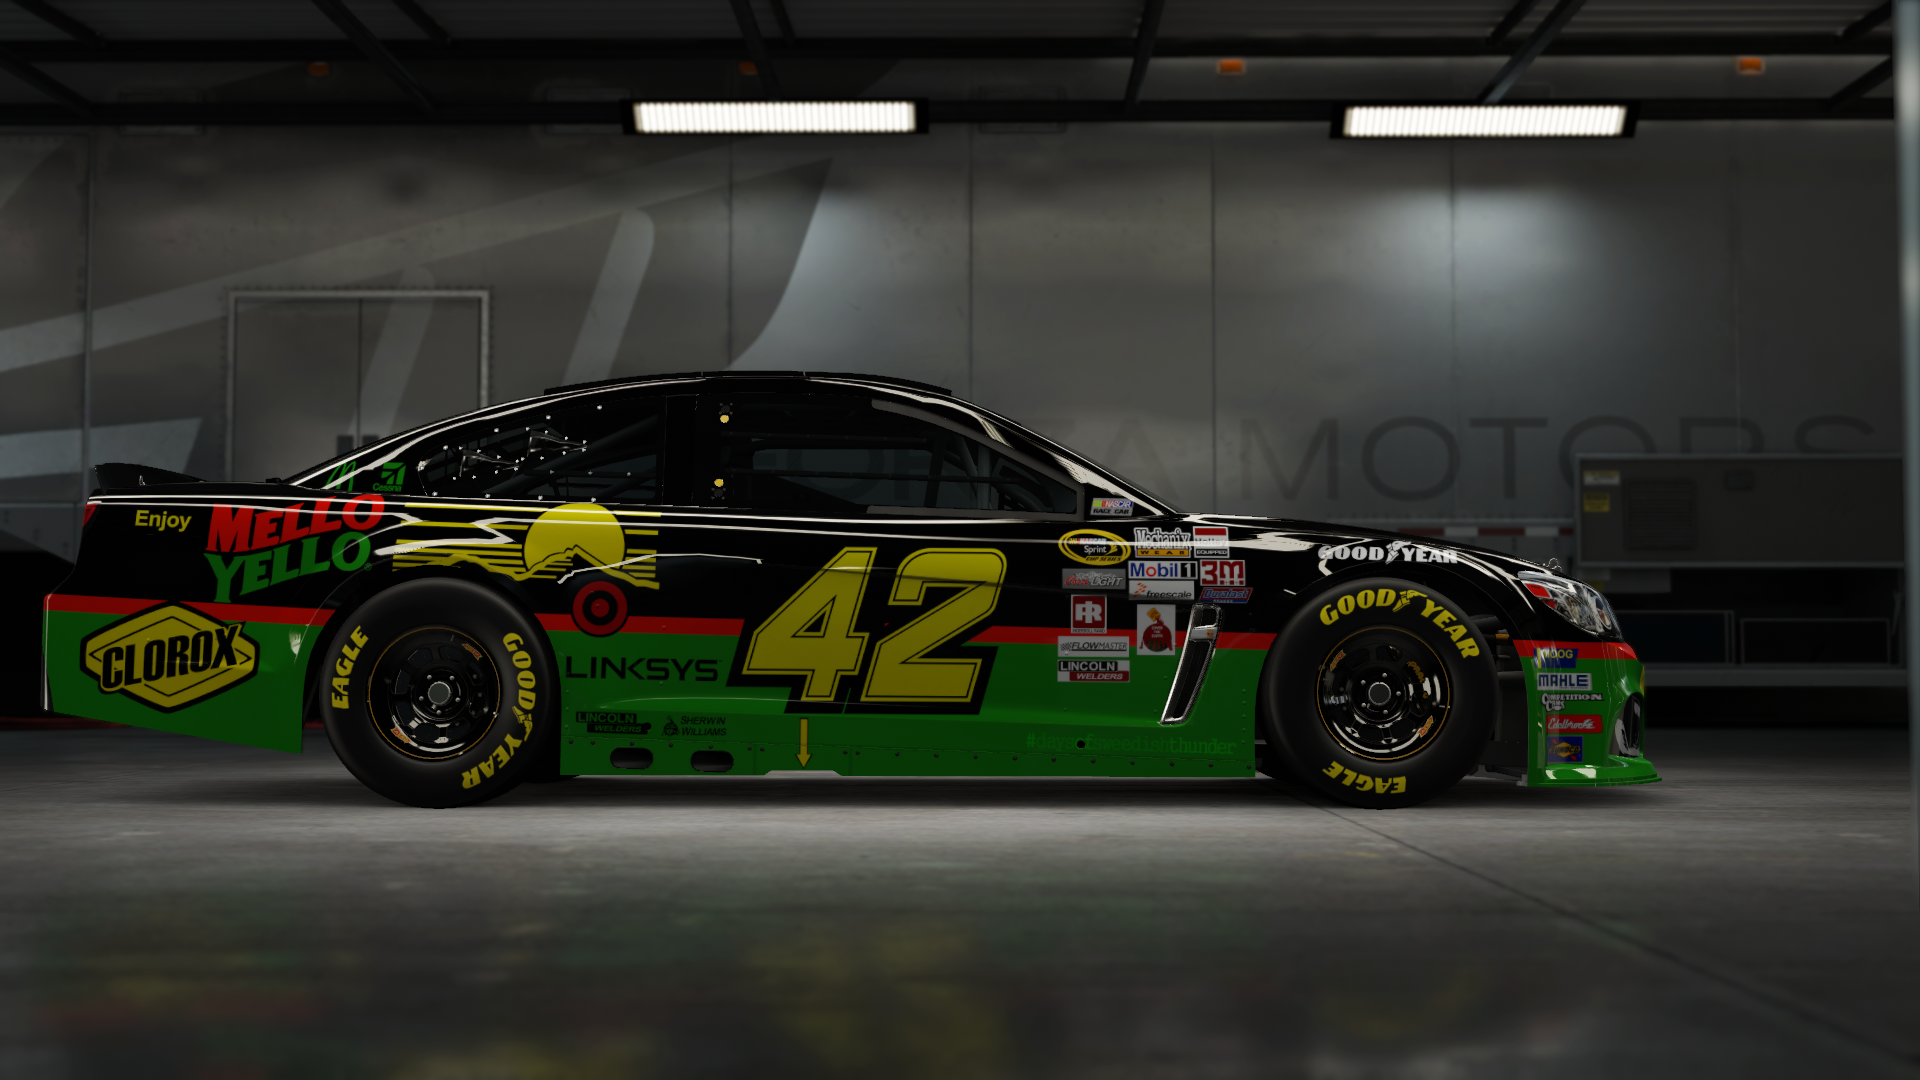 On the #42 Chip Ganassi Racing Target Super Sport, Made by SweedishThunder